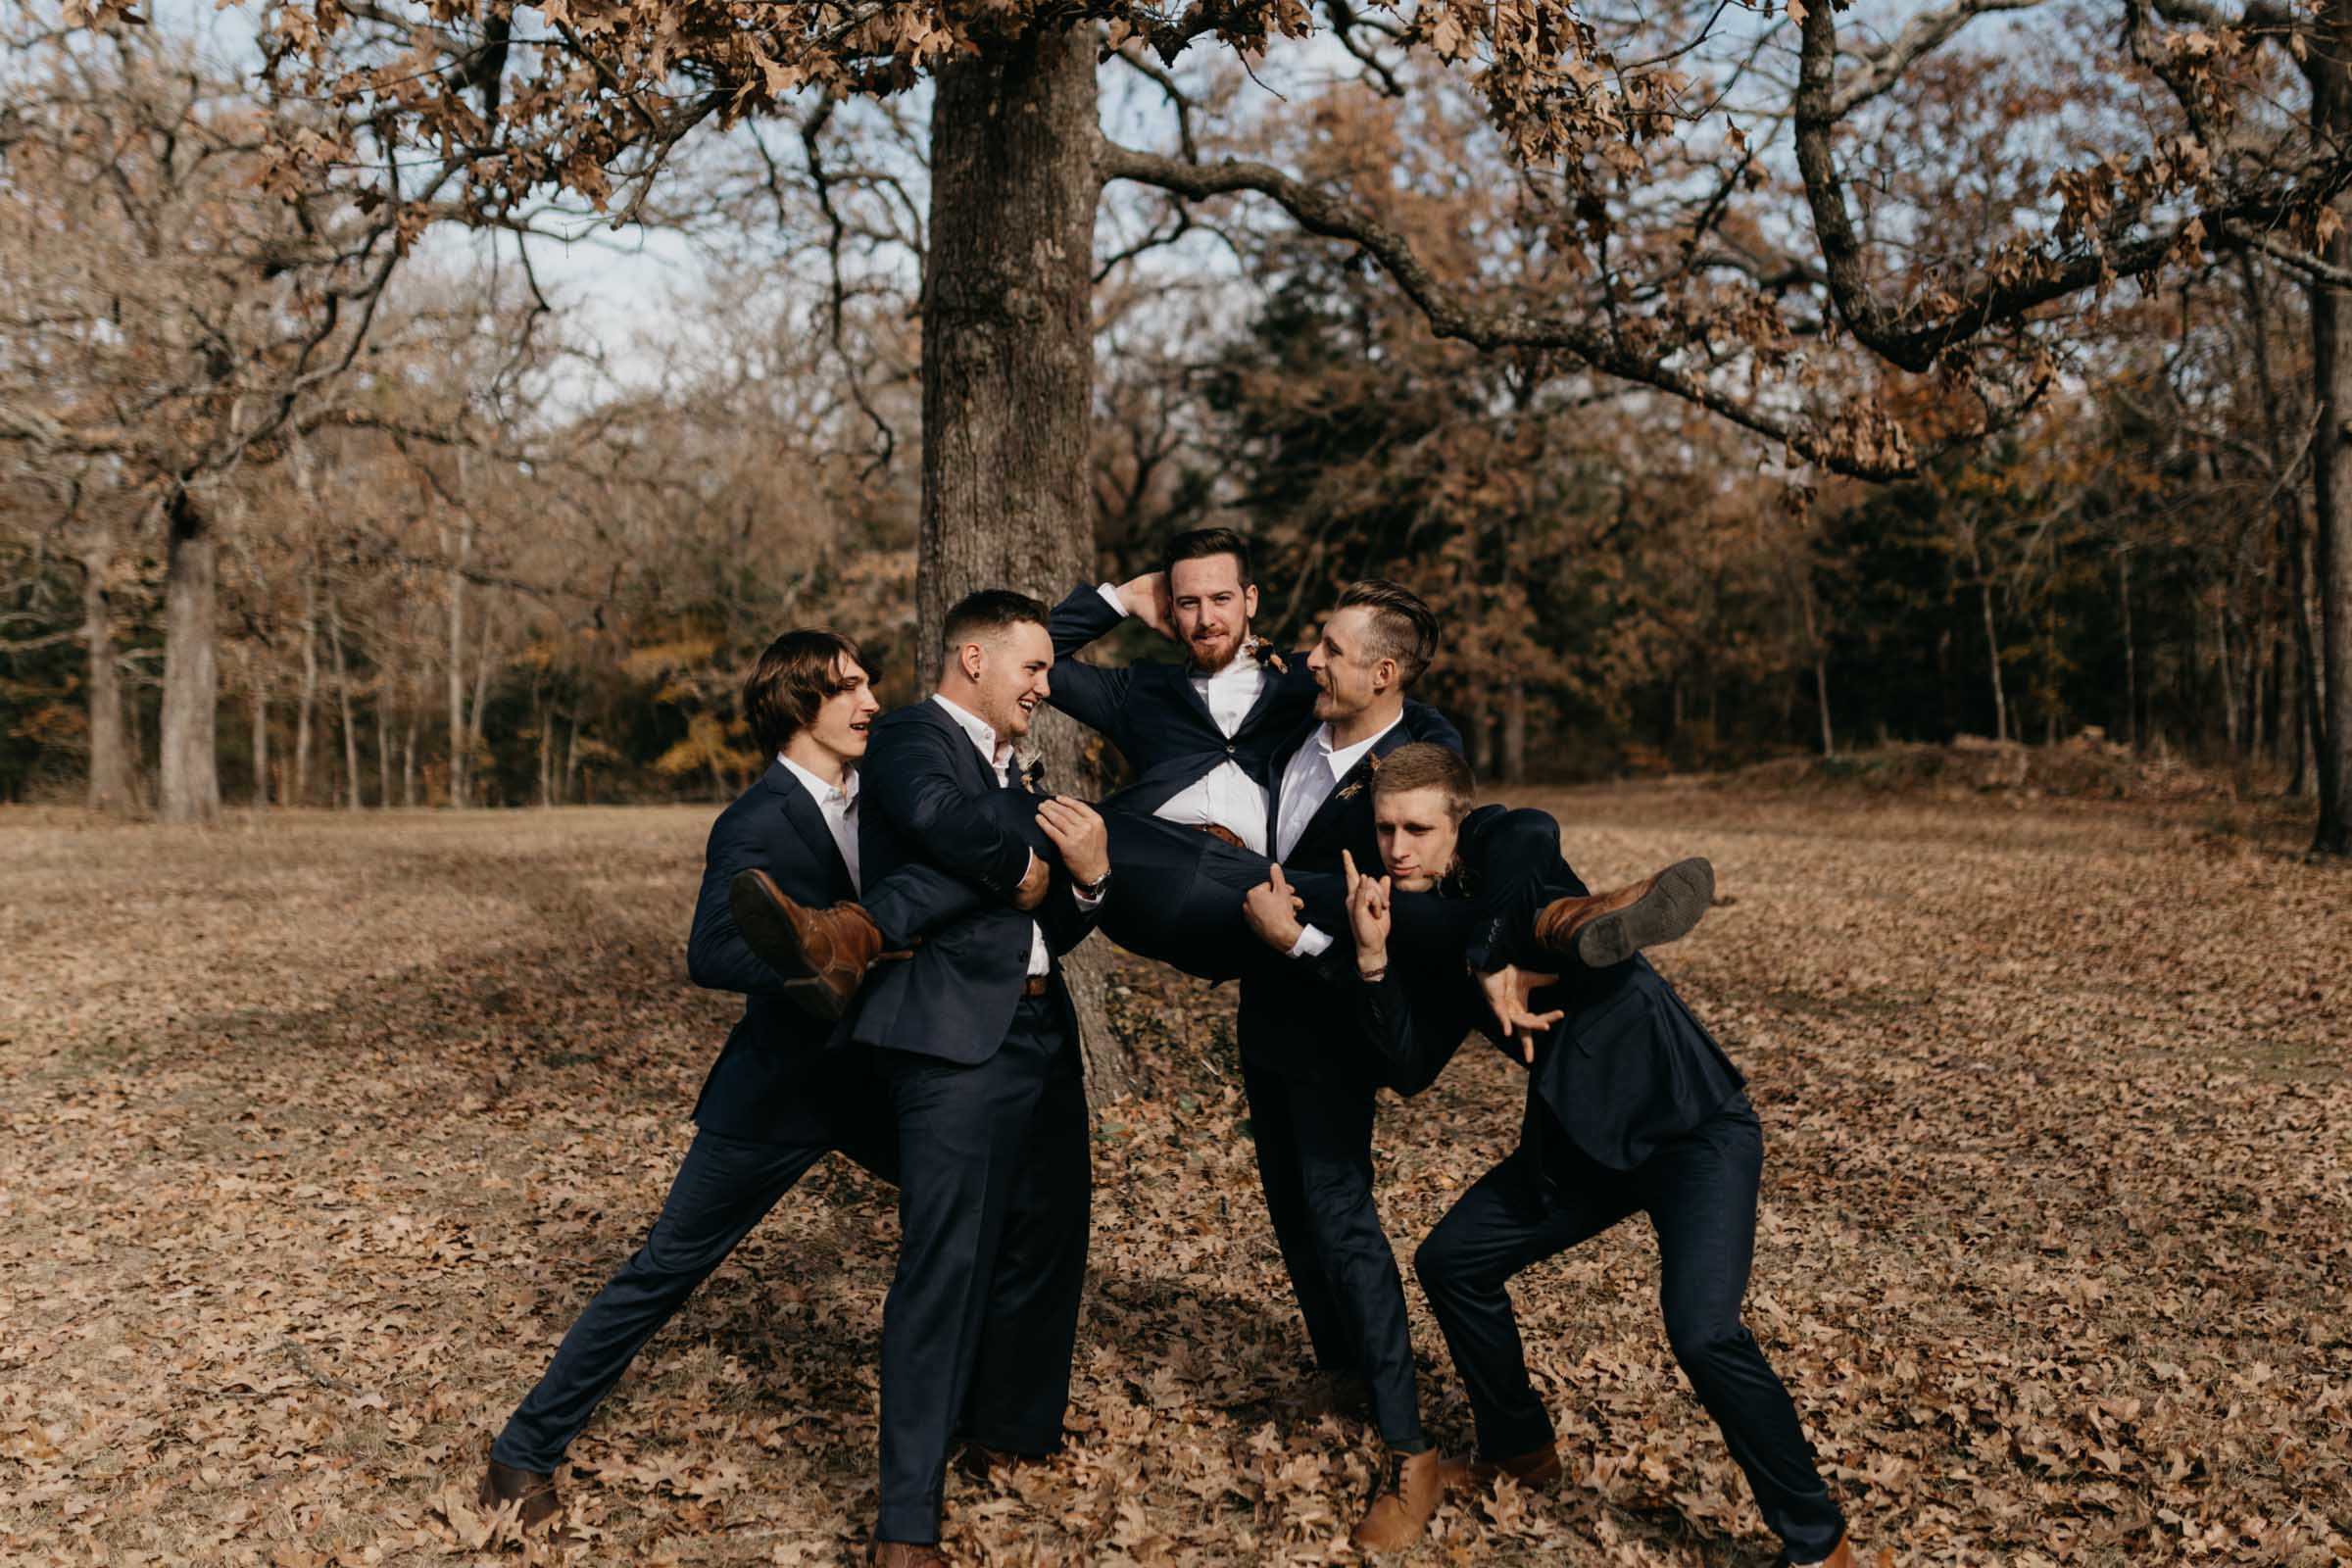 Groomsmen picking up the groom for a photo on their wedding day